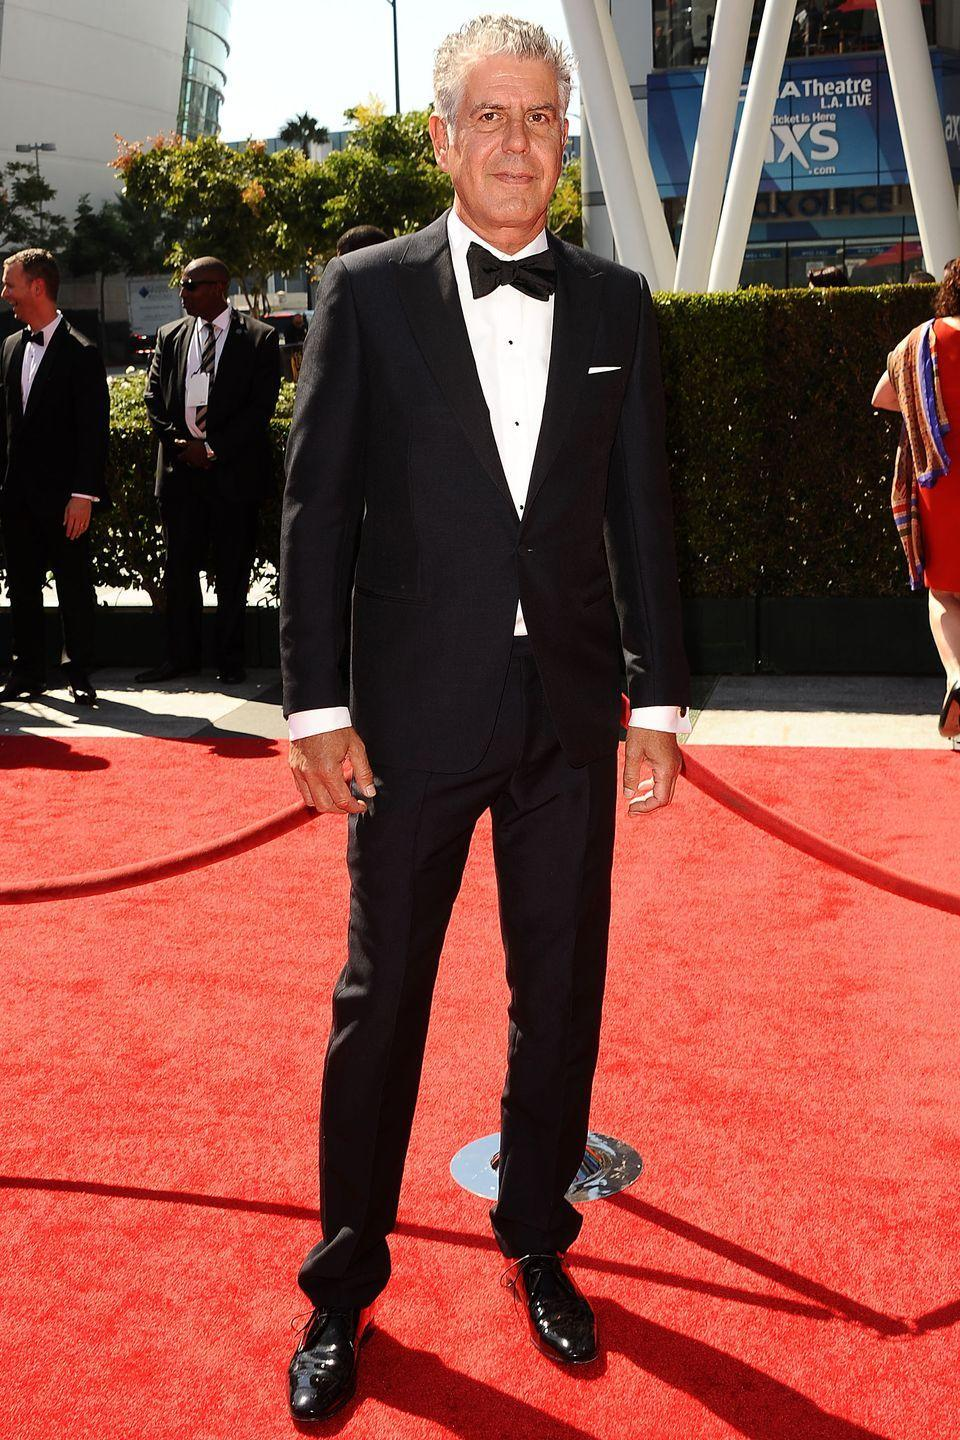 <p>In 2013, Bourdain moved to CNN to host <em>Parts Unknown</em>, a travel show that focuses on food, culture, and politics. That show is still on the air. Here, Bourdain attends the Emmy Awards in L.A. on September 15, 2013. He's won four Emmy awards for <em>Parts Unknown</em>. </p>